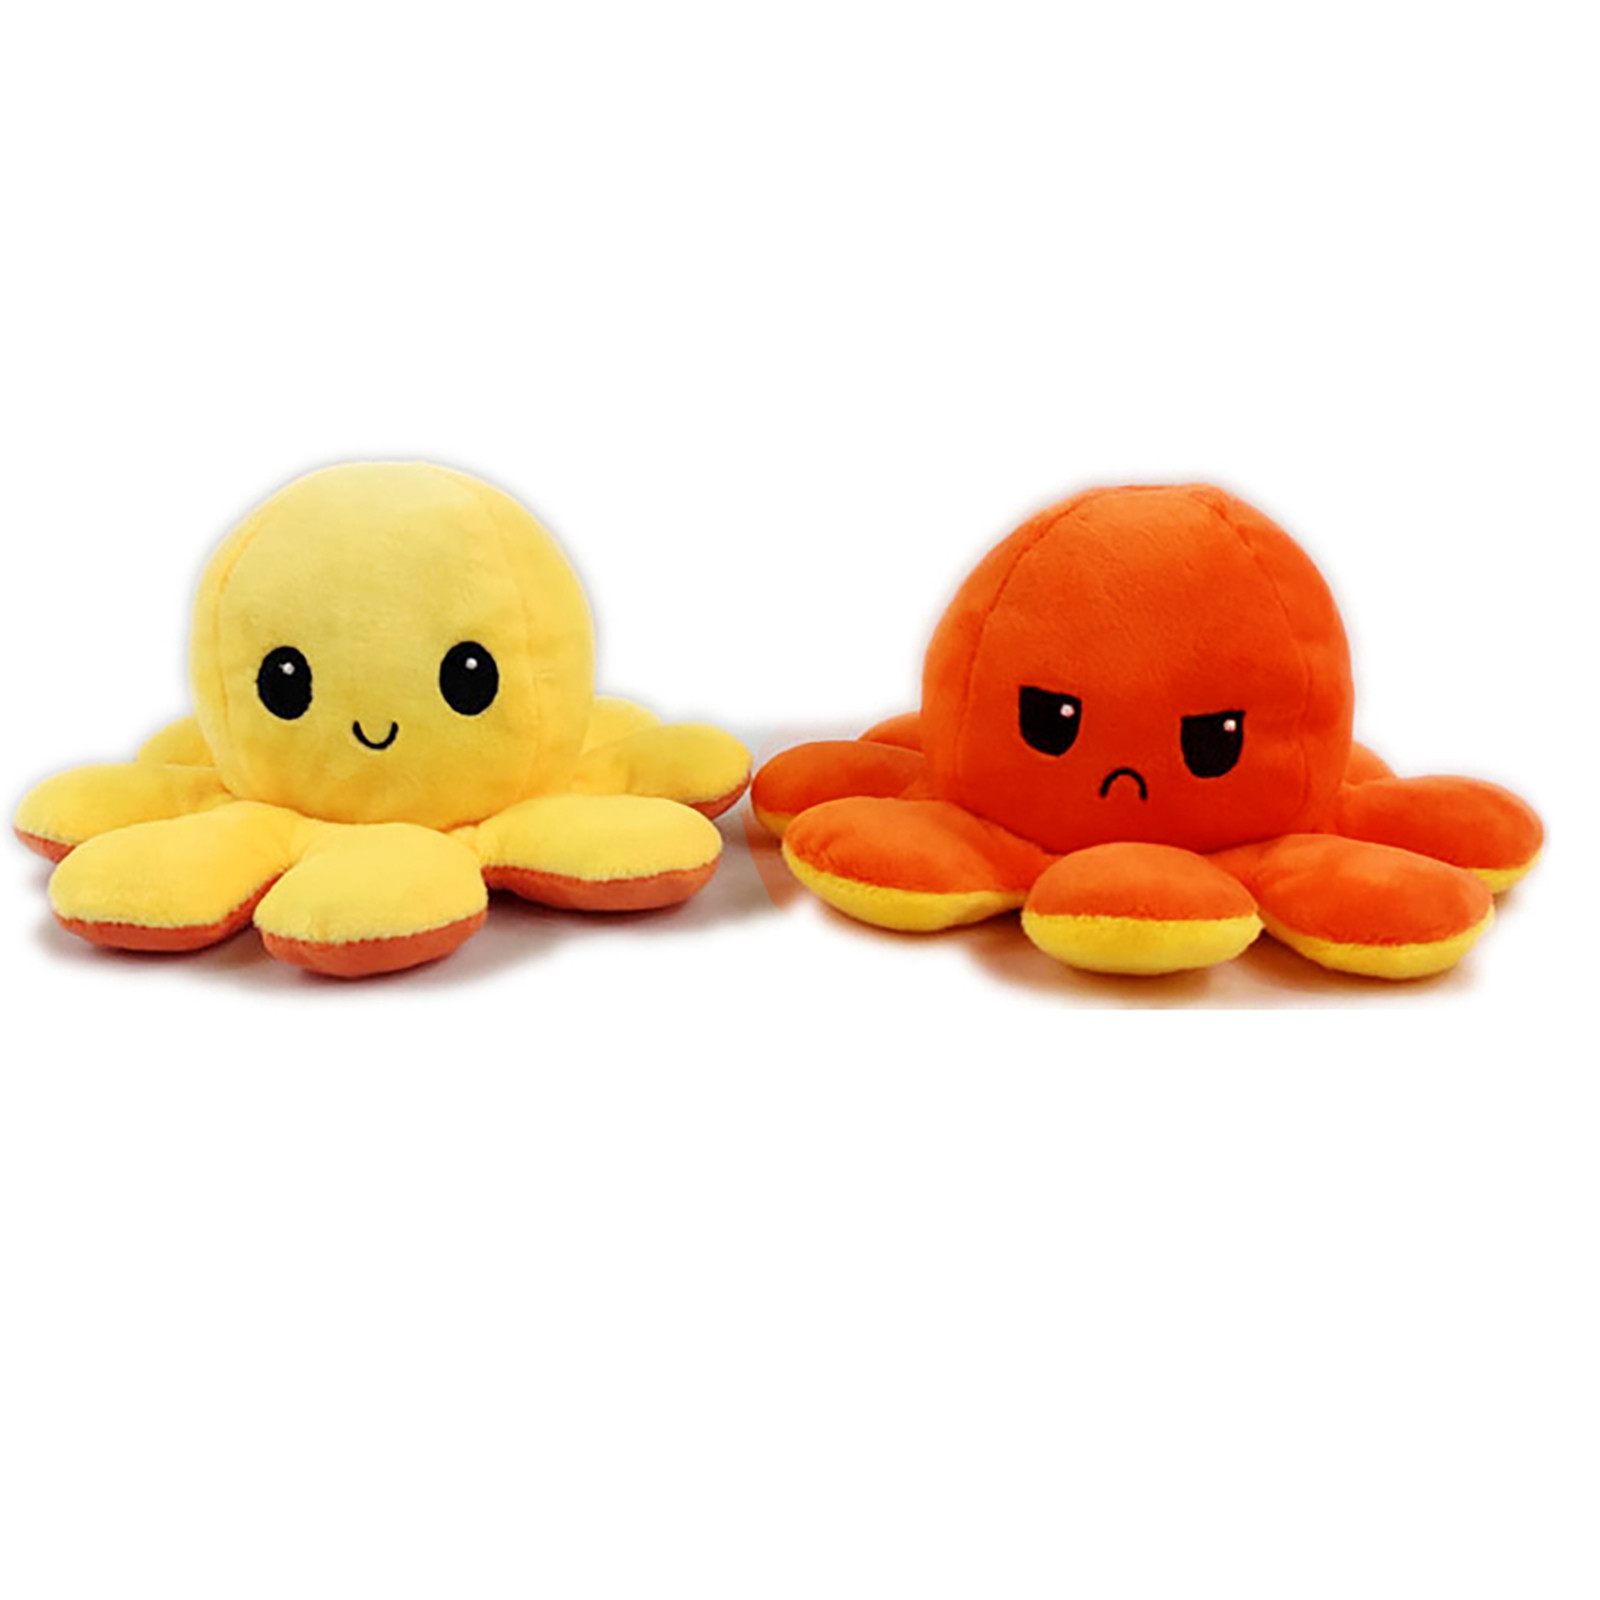 Toy Mascot Double-Sided-Octopus Mood Plush-Toy Stuffed Funny Kids Children for Show Birthday-Gift